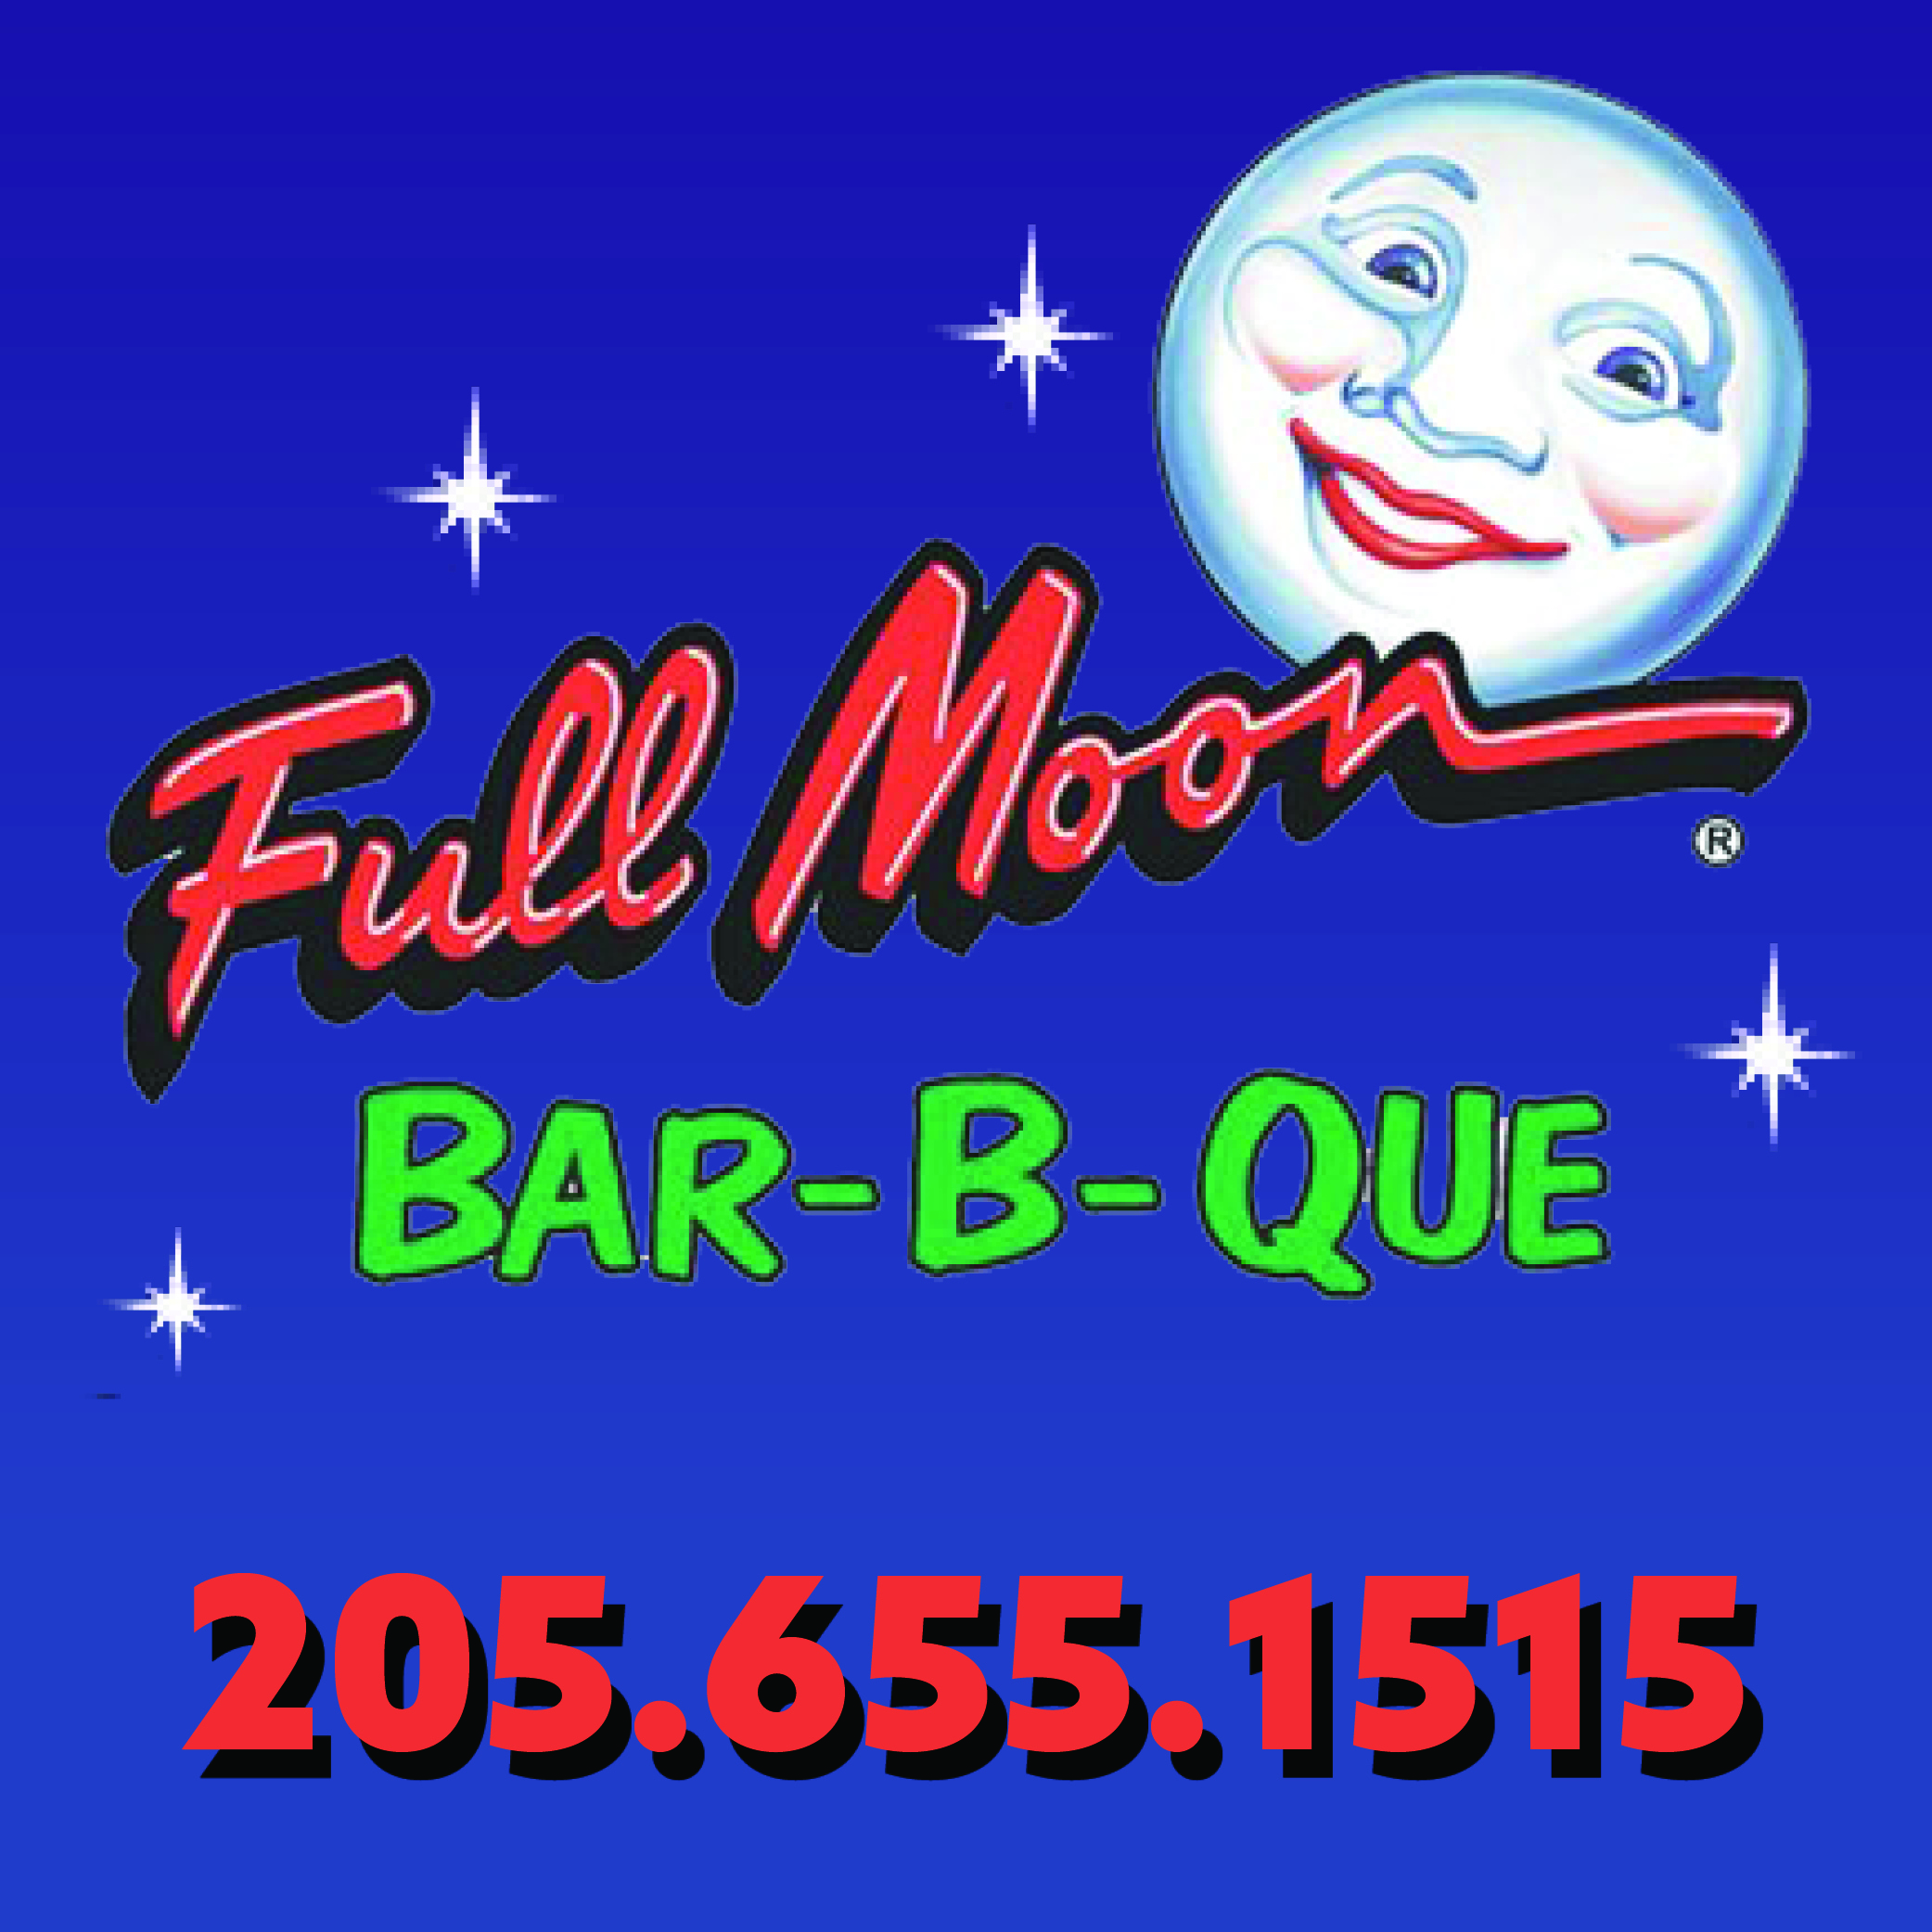 Full Moon Barbeque